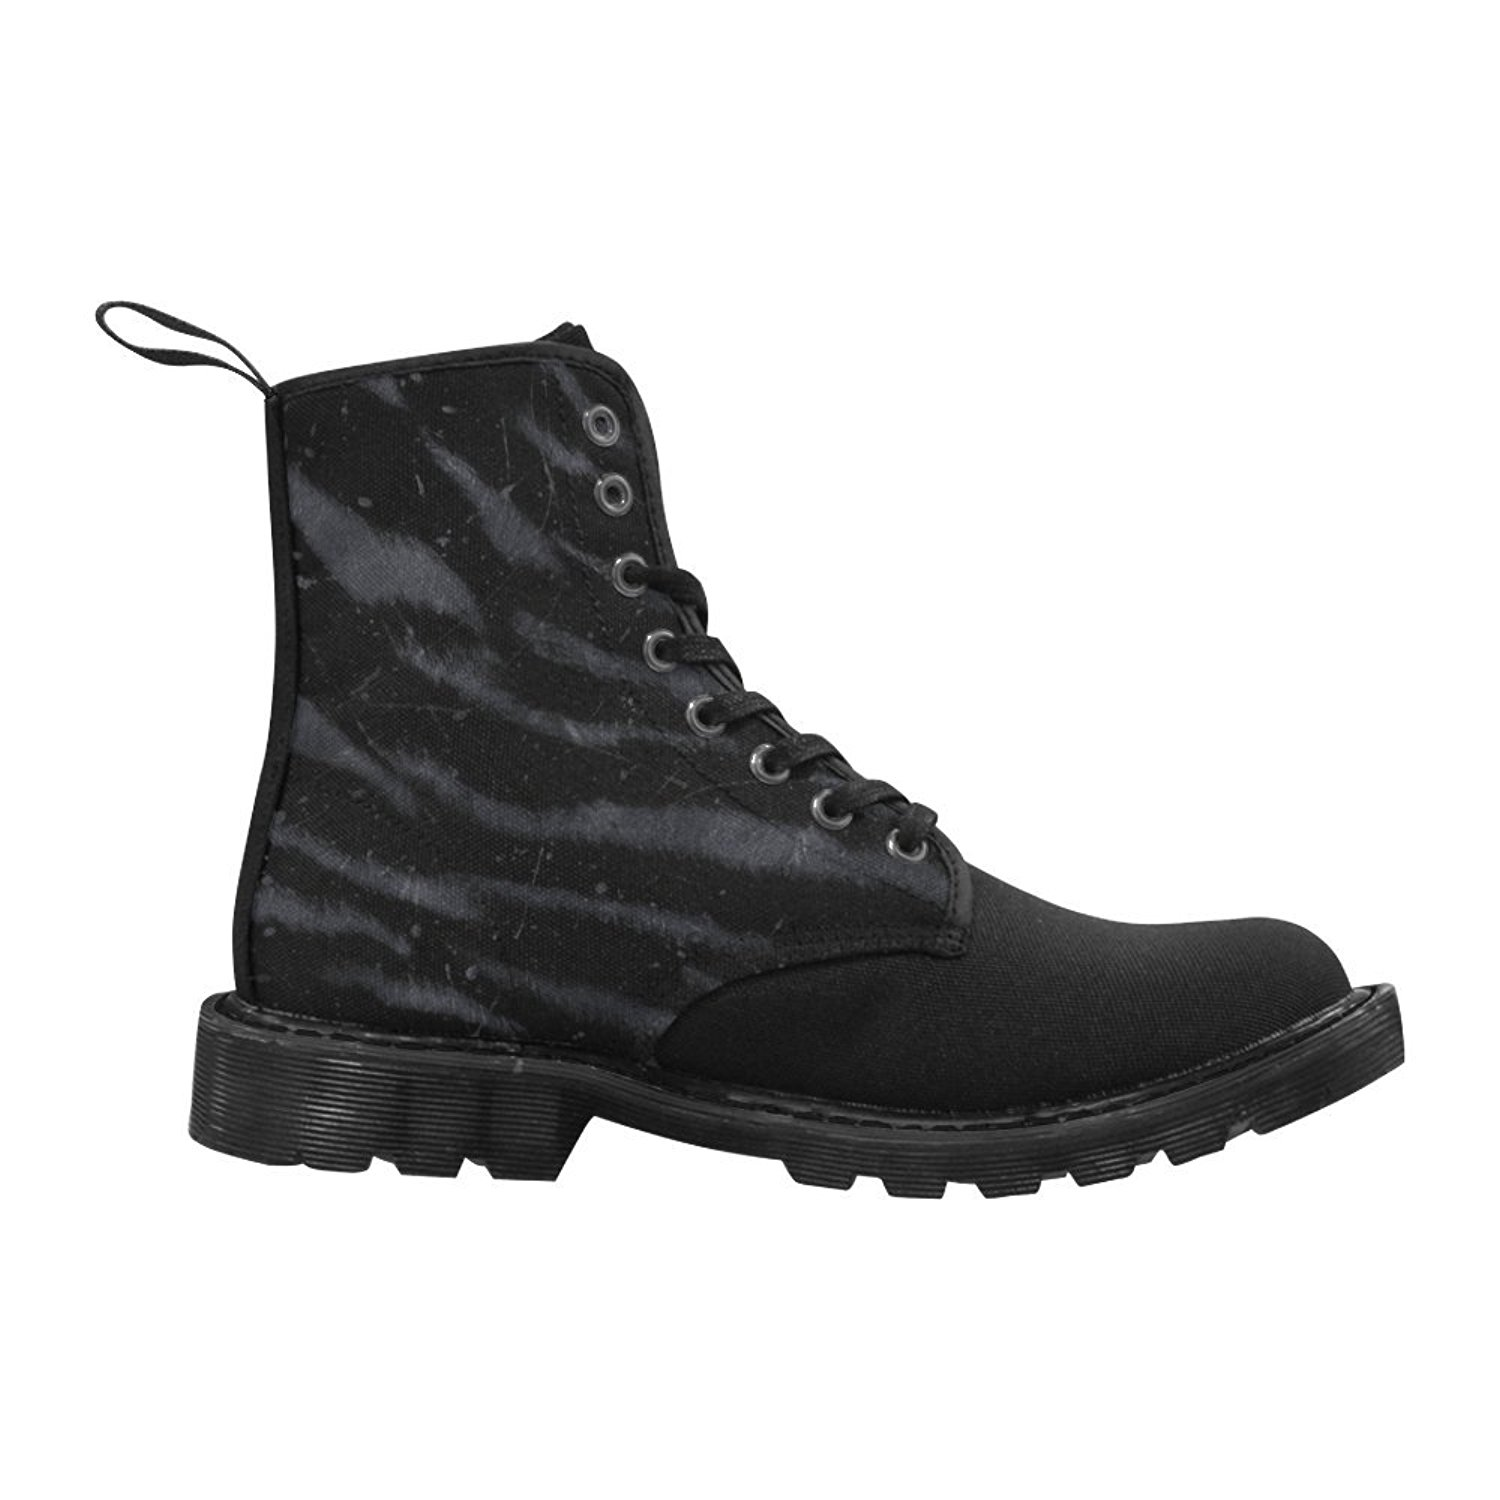 9f5201e4124 Get Quotations · Elliz Clothing Darkness Zebra Print Lace up Boots Gothic  Animal Print Combat Boots (Men s)